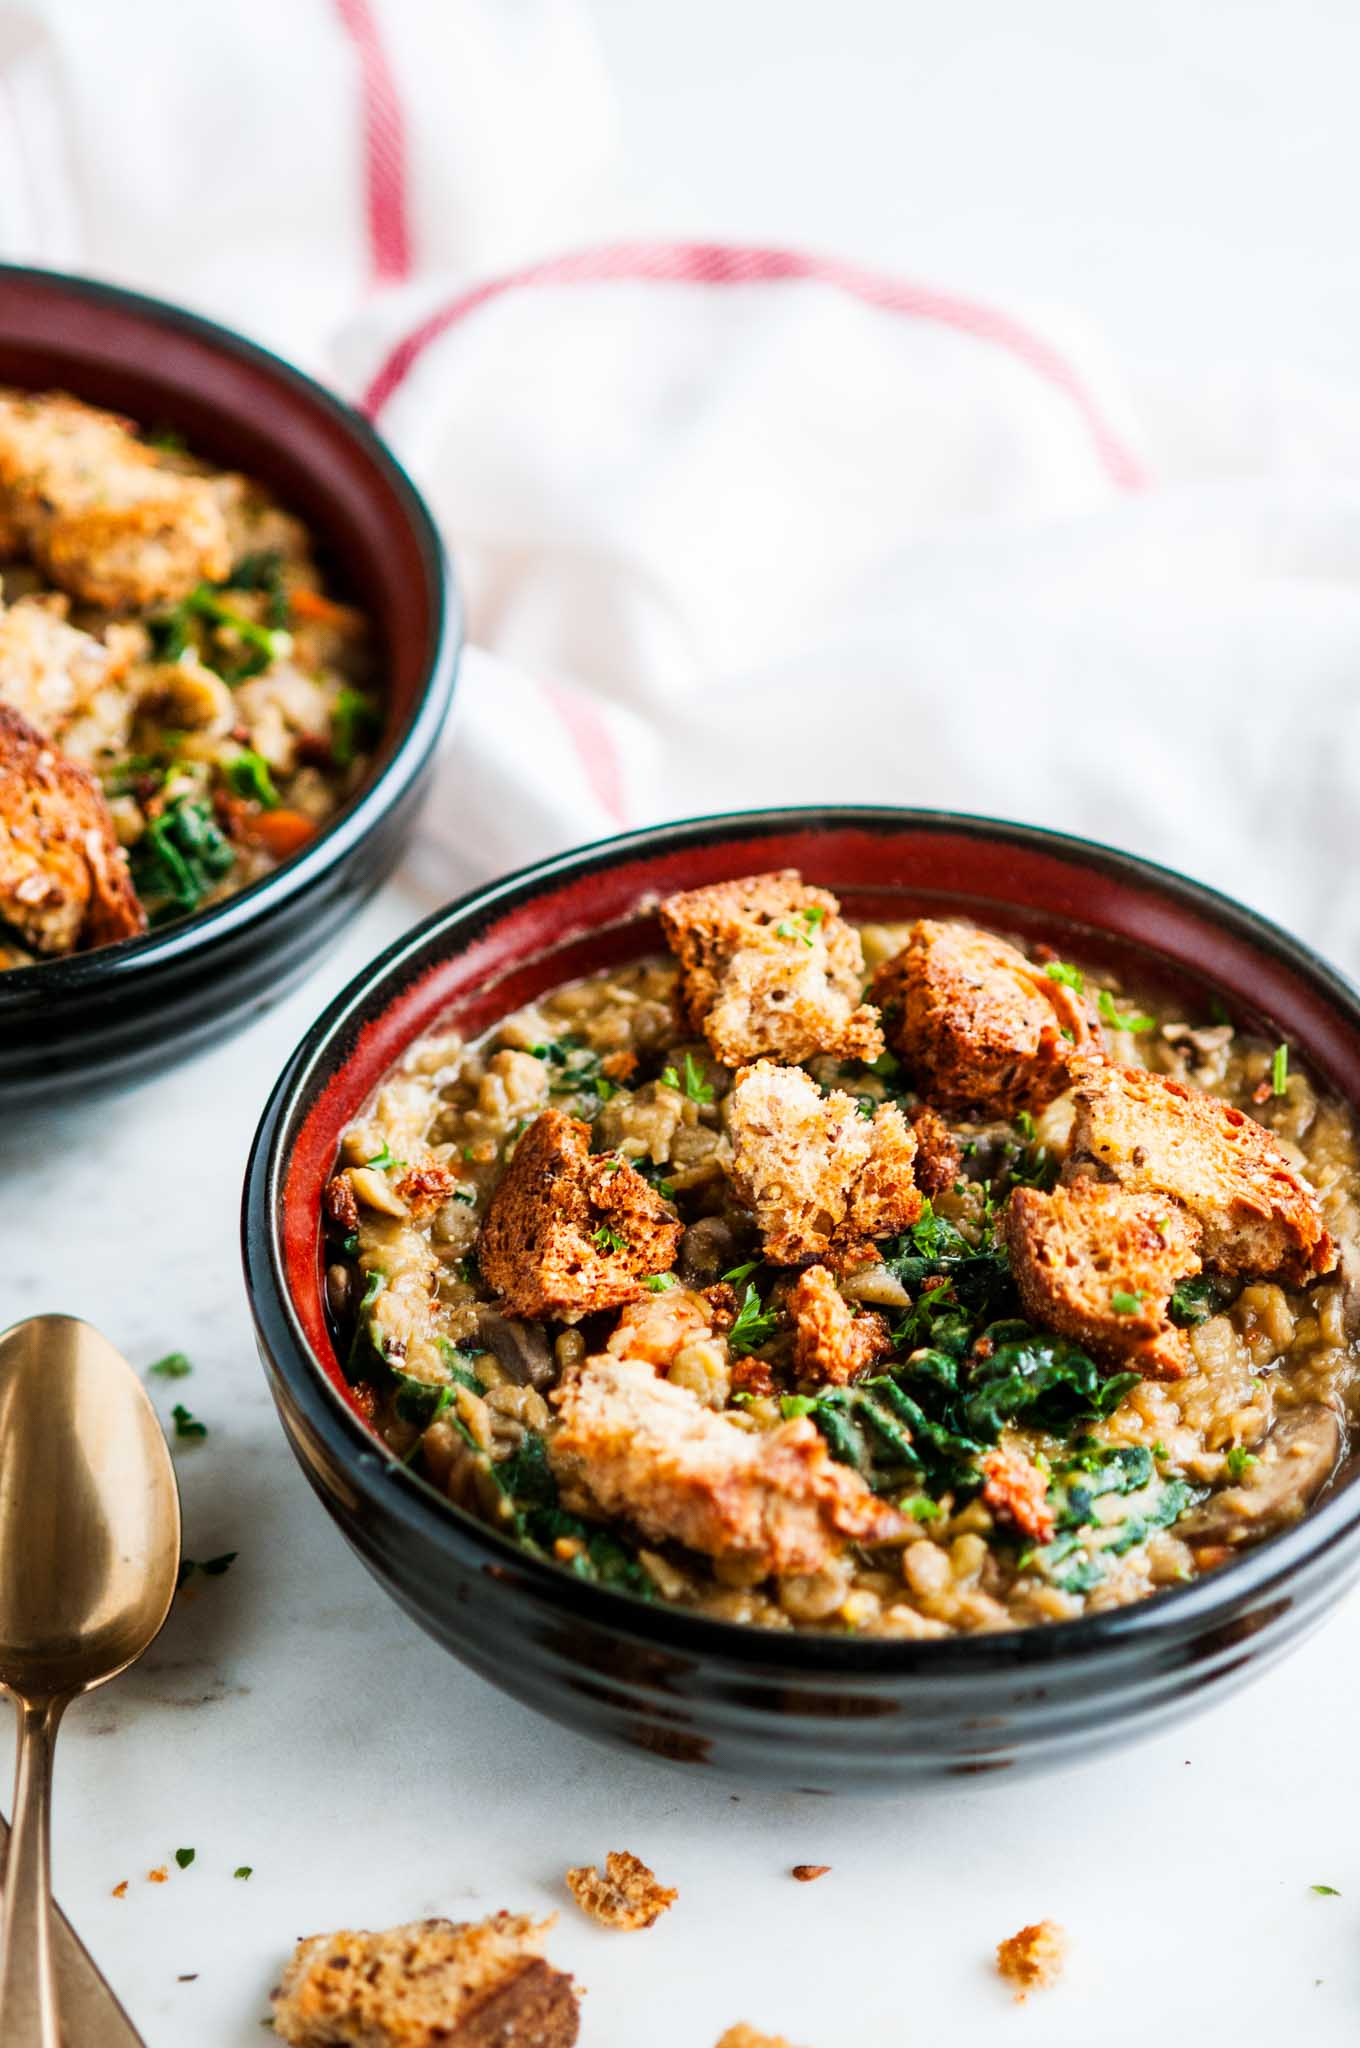 One Pot Creamy Lentil Soup with Whole Wheat Croutons